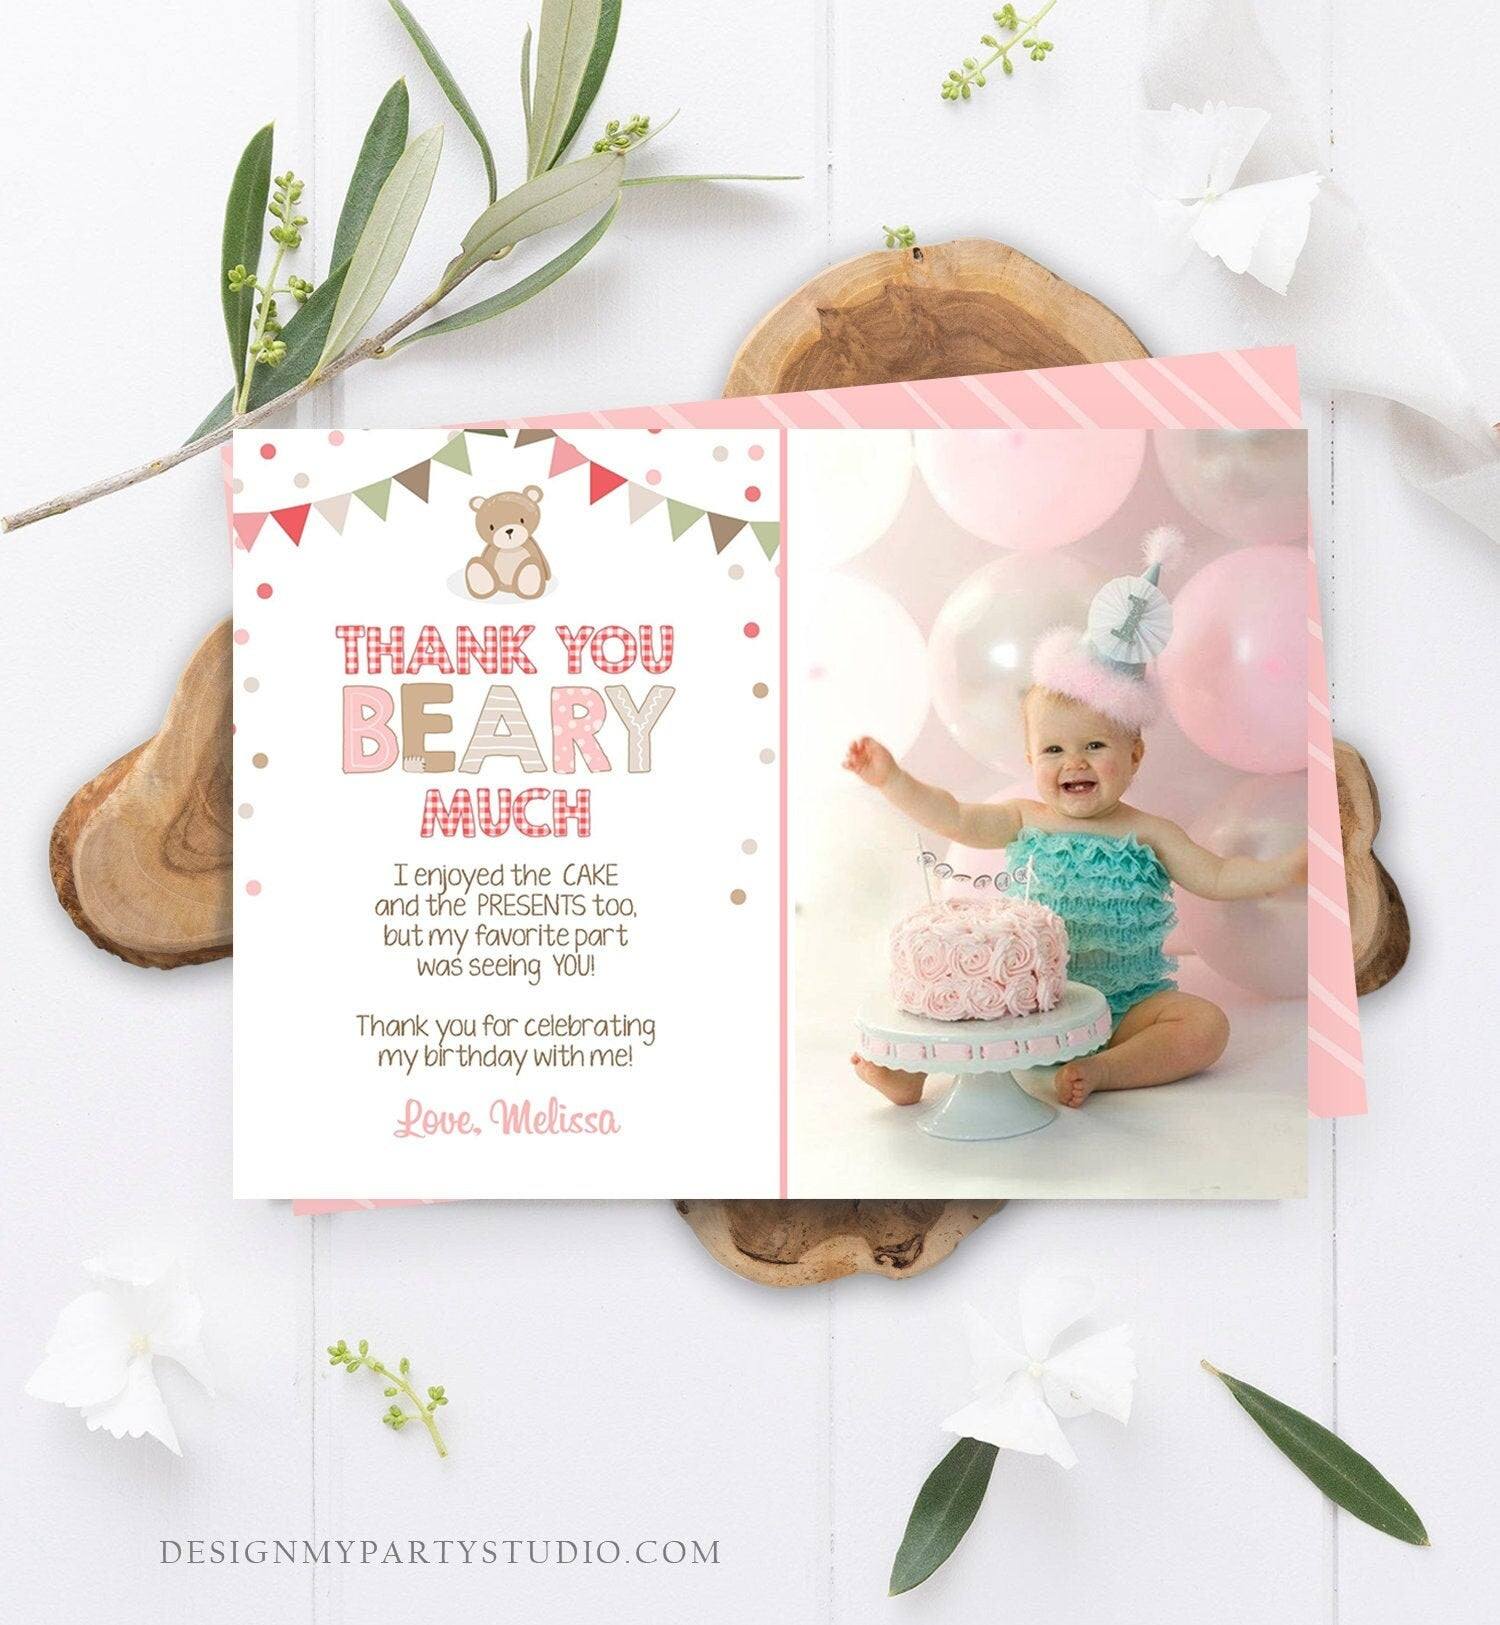 Teddy Bear Thank You Card Birthday Picnic Beary Much Girl Pink Confetti Download Printable Thank You Template Editable Digital Corjl 0100